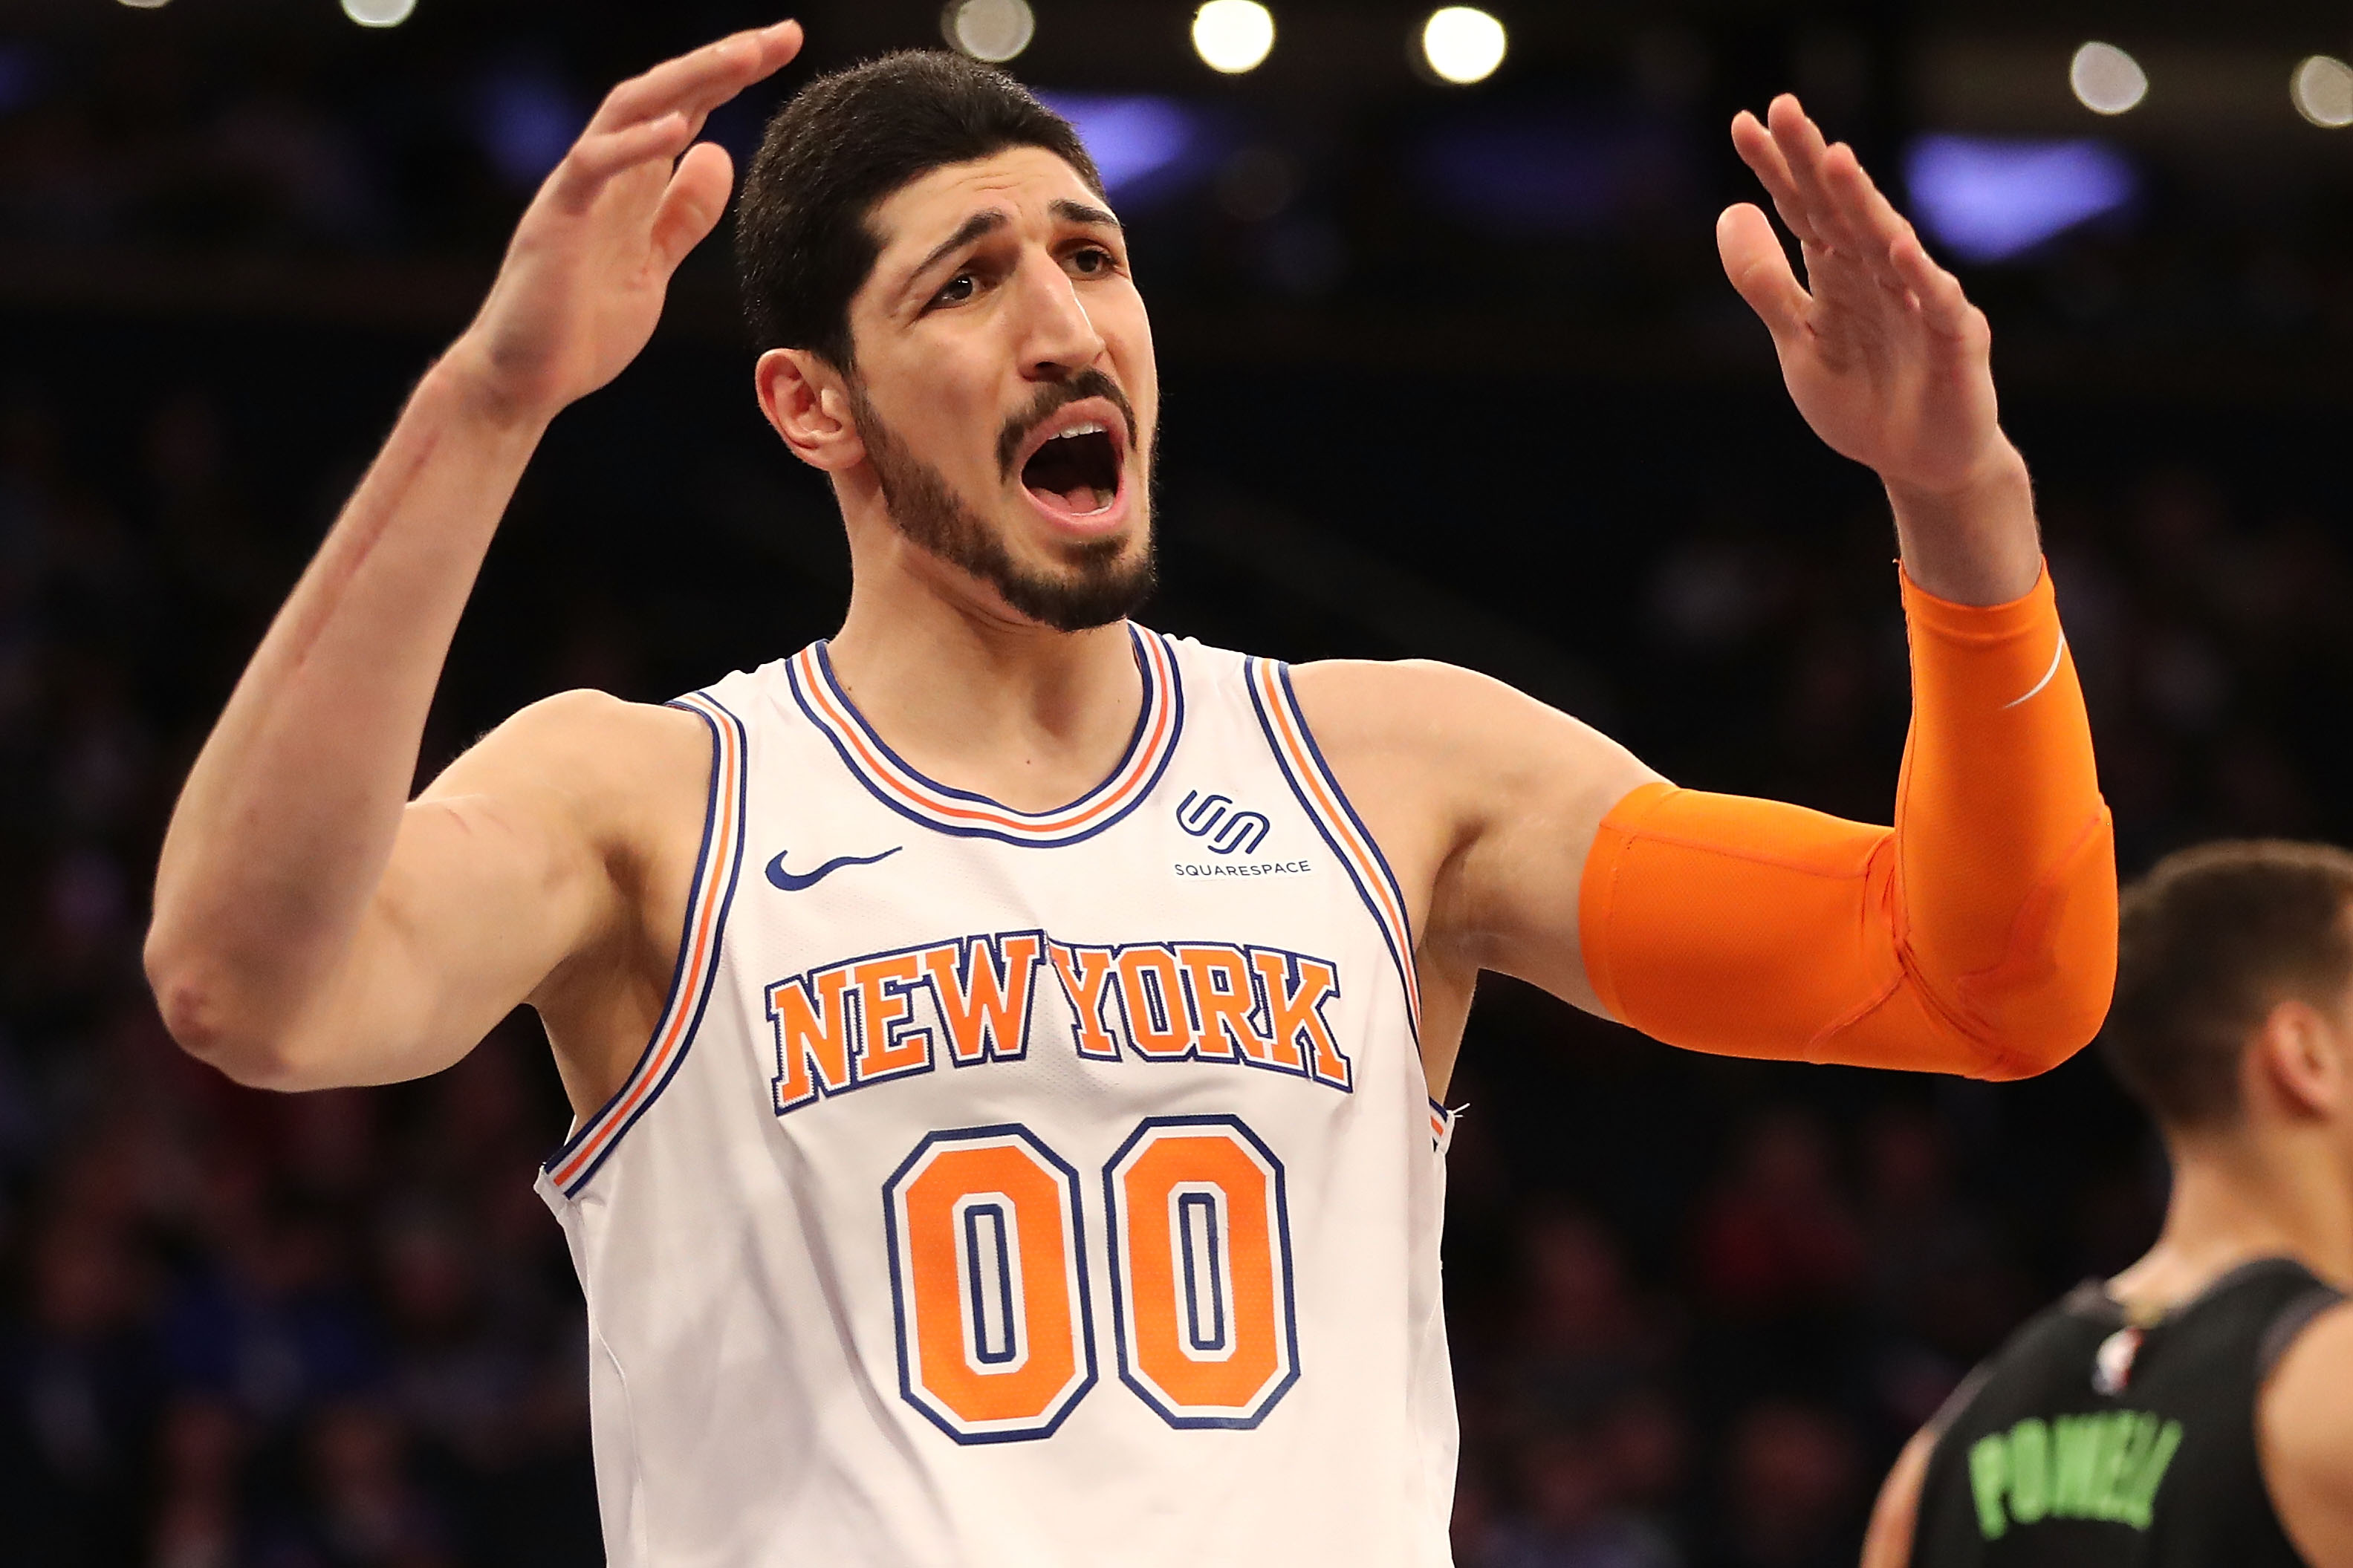 Enes Kanter #00 of the New York Knicks reacts in the second quarter against the Dallas Mavericks during their game at Madison Square Garden on March 13, 2018 in New York City.